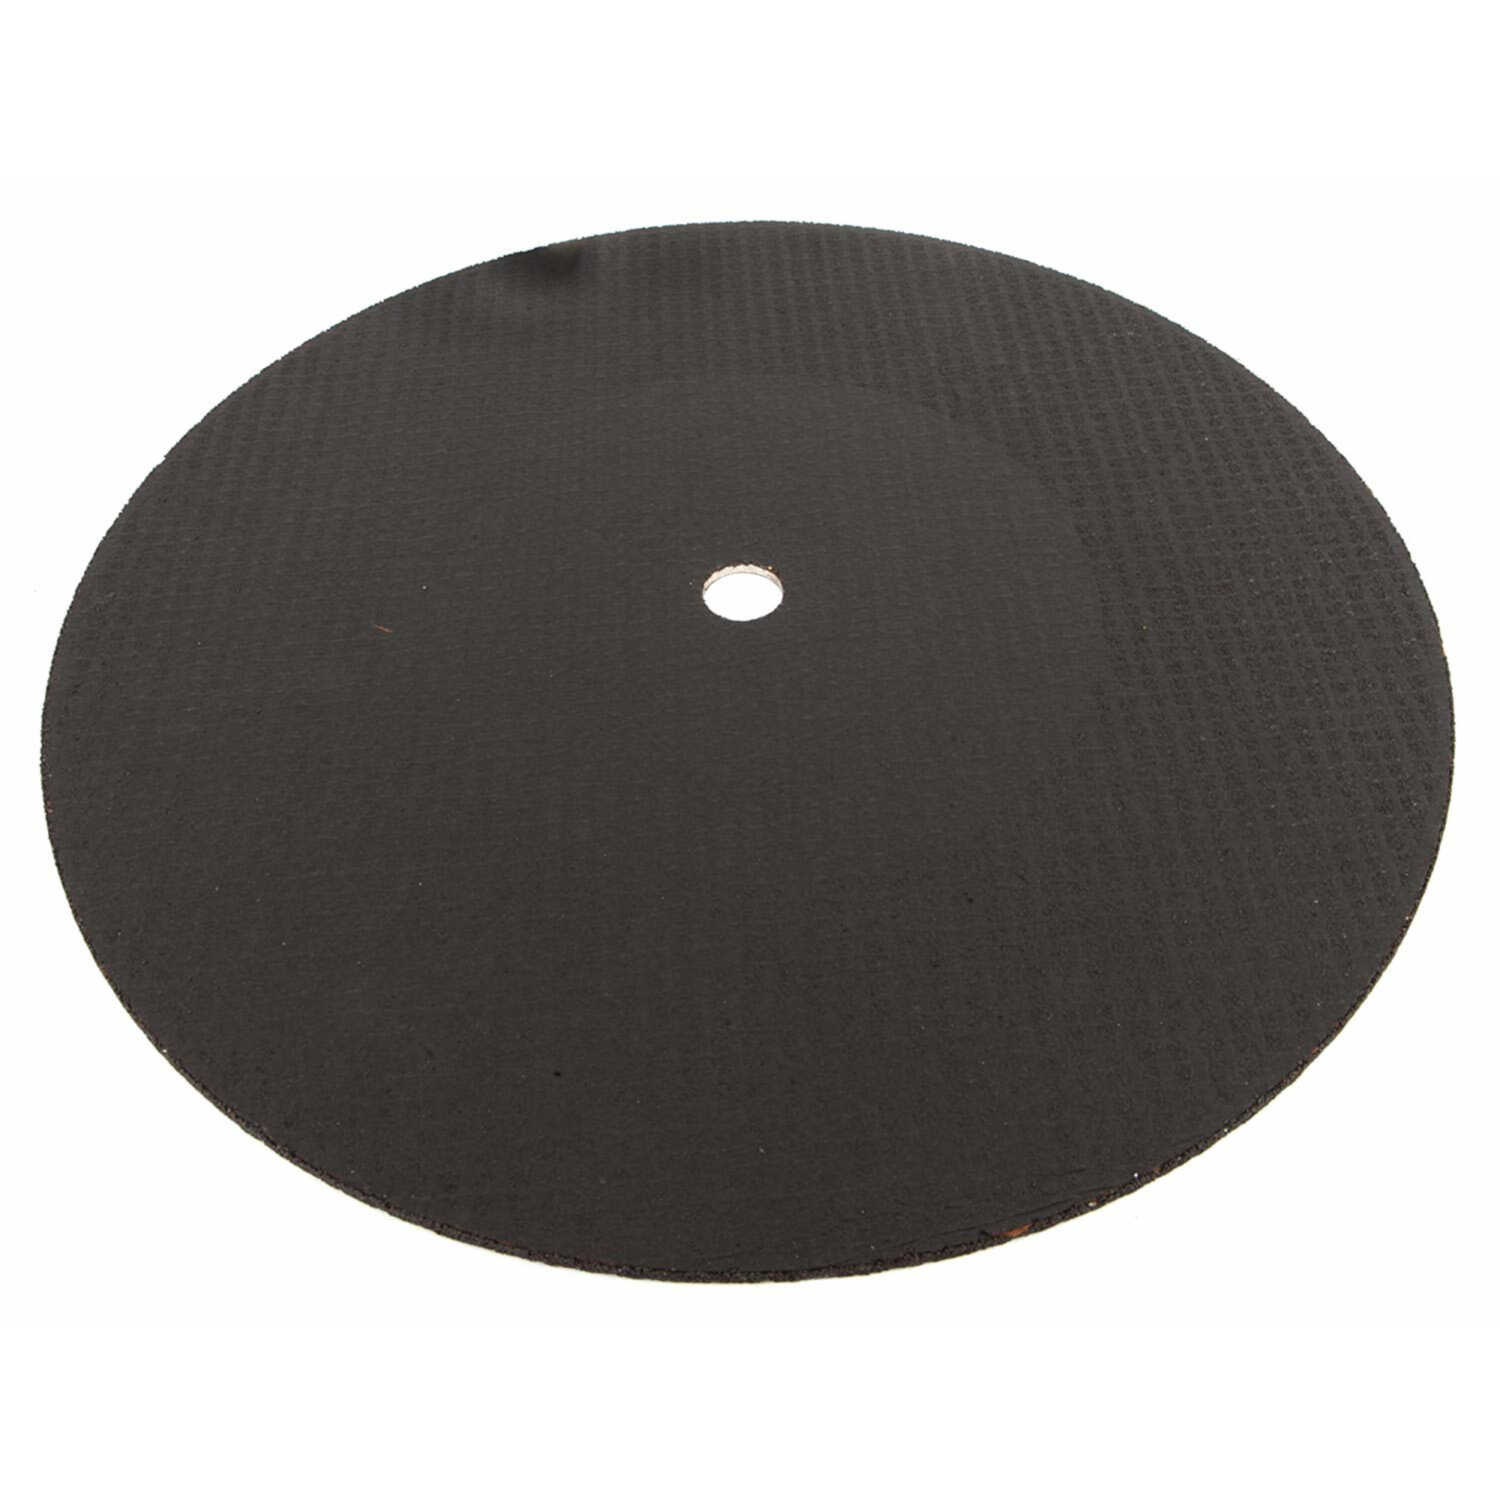 Forney  4 in. Dia. x 3/8 in.  Aluminum Oxide  Metal Cut-Off Wheel  1 pc.